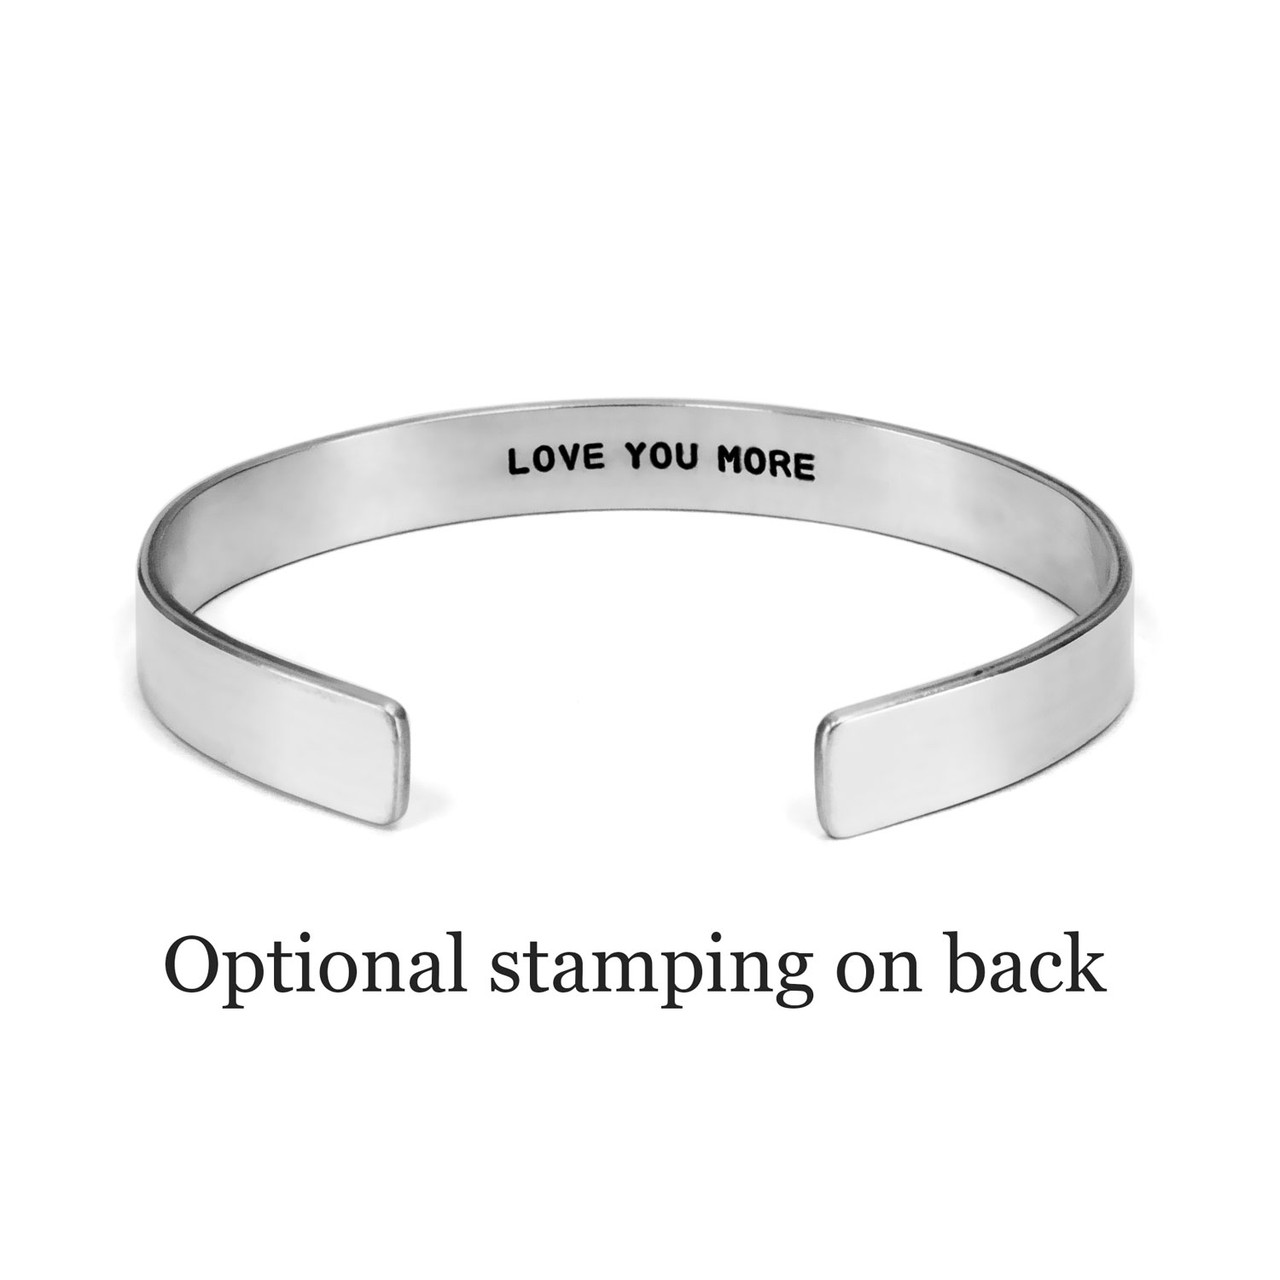 optional hand stamped message on inside of sterling silver cuff